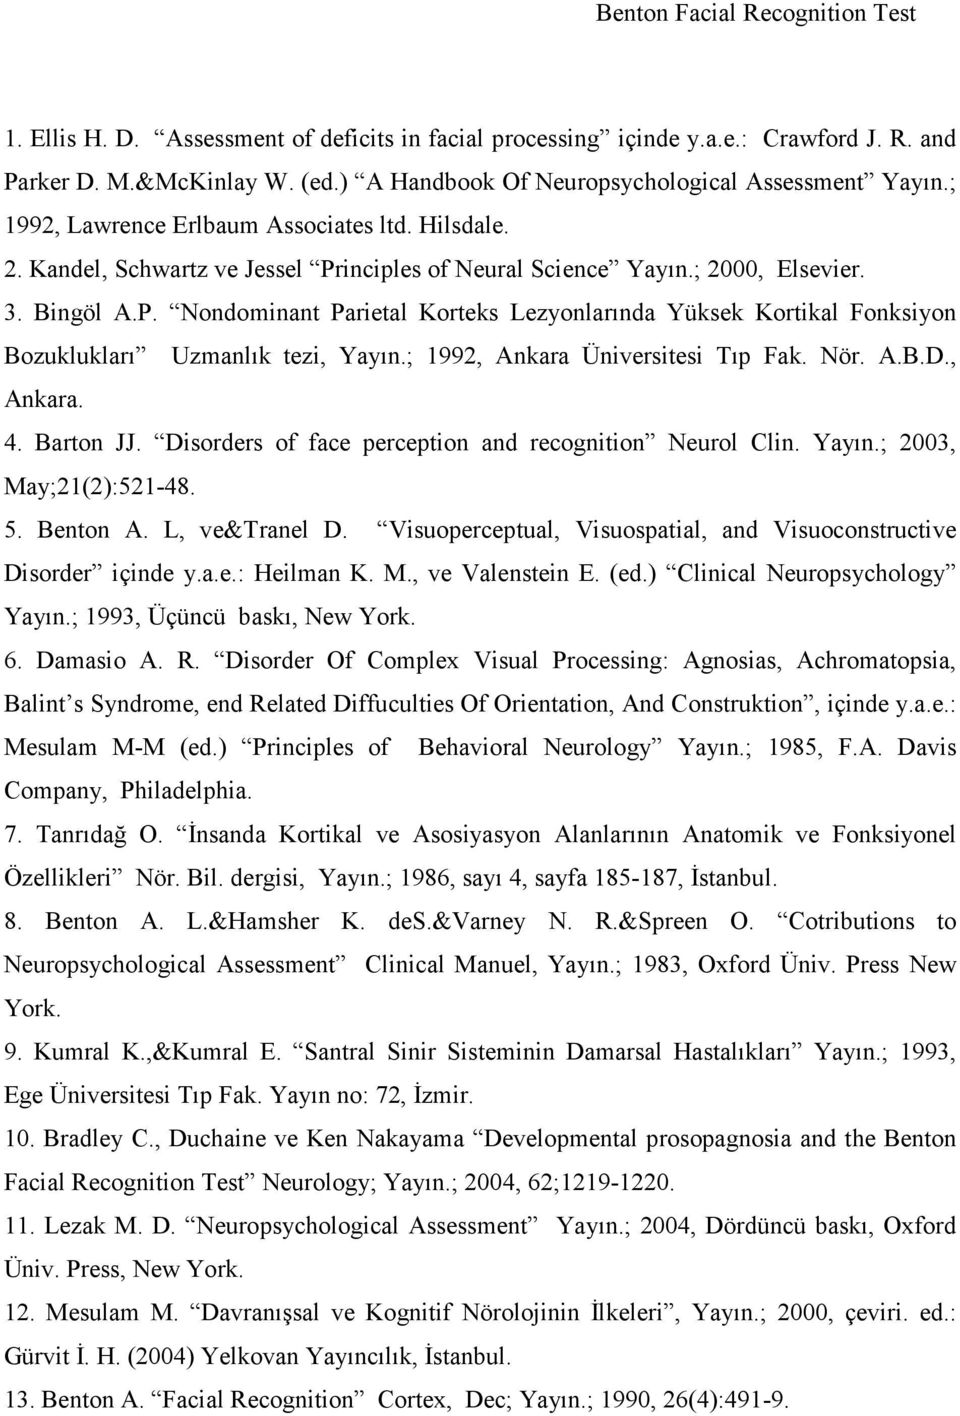 ; 1992, Ankara Üniversitesi Tıp Fak. Nör. A.B.D., Ankara. 4. Barton JJ. Disorders of face perception and recognition Neurol Clin. Yayın.; 2003, May;21(2):521-48. 5. Benton A. L, ve&tranel D.